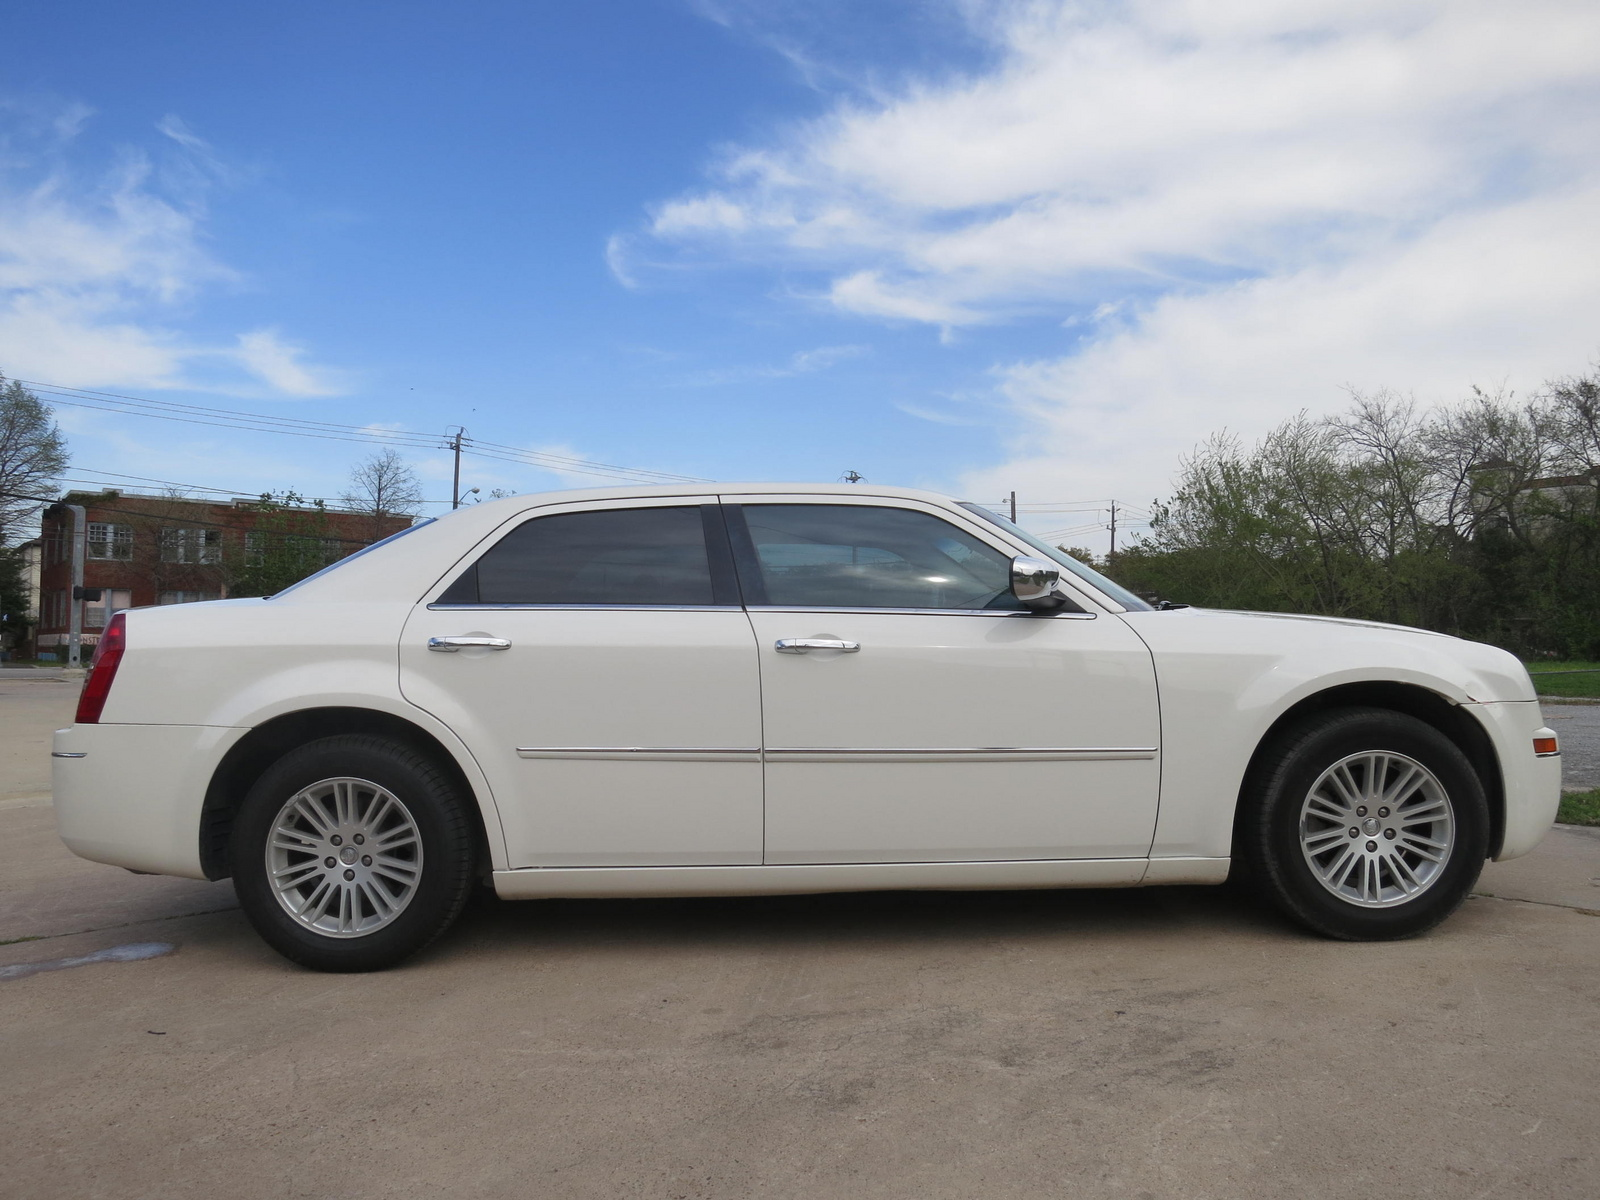 chrysler 300 used for sale mn with 2005 Chrysler 200 S Price on 2016 Dodge Grand Caravan Mounds View Mn Heidi And Wade A besides Redwood City Dodge additionally 134705 together with 4365238874 Austin Mn as well Chrysler 300 300c Minnesota Pictures.